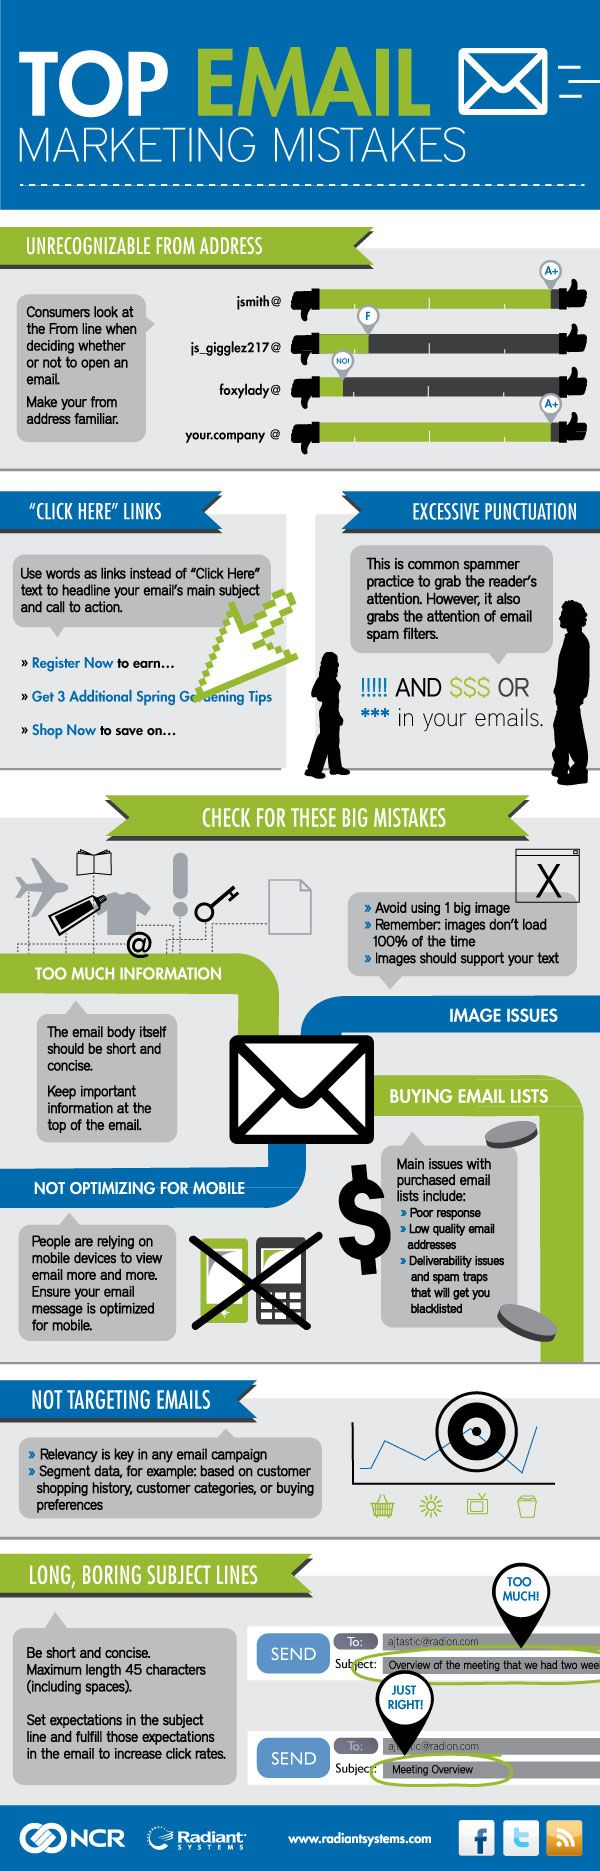 Top #EmailMarketing Mistakes #infographic // Los Errores Más Grandes En EmailMarketing #infografia (repinned by @ricardollera)